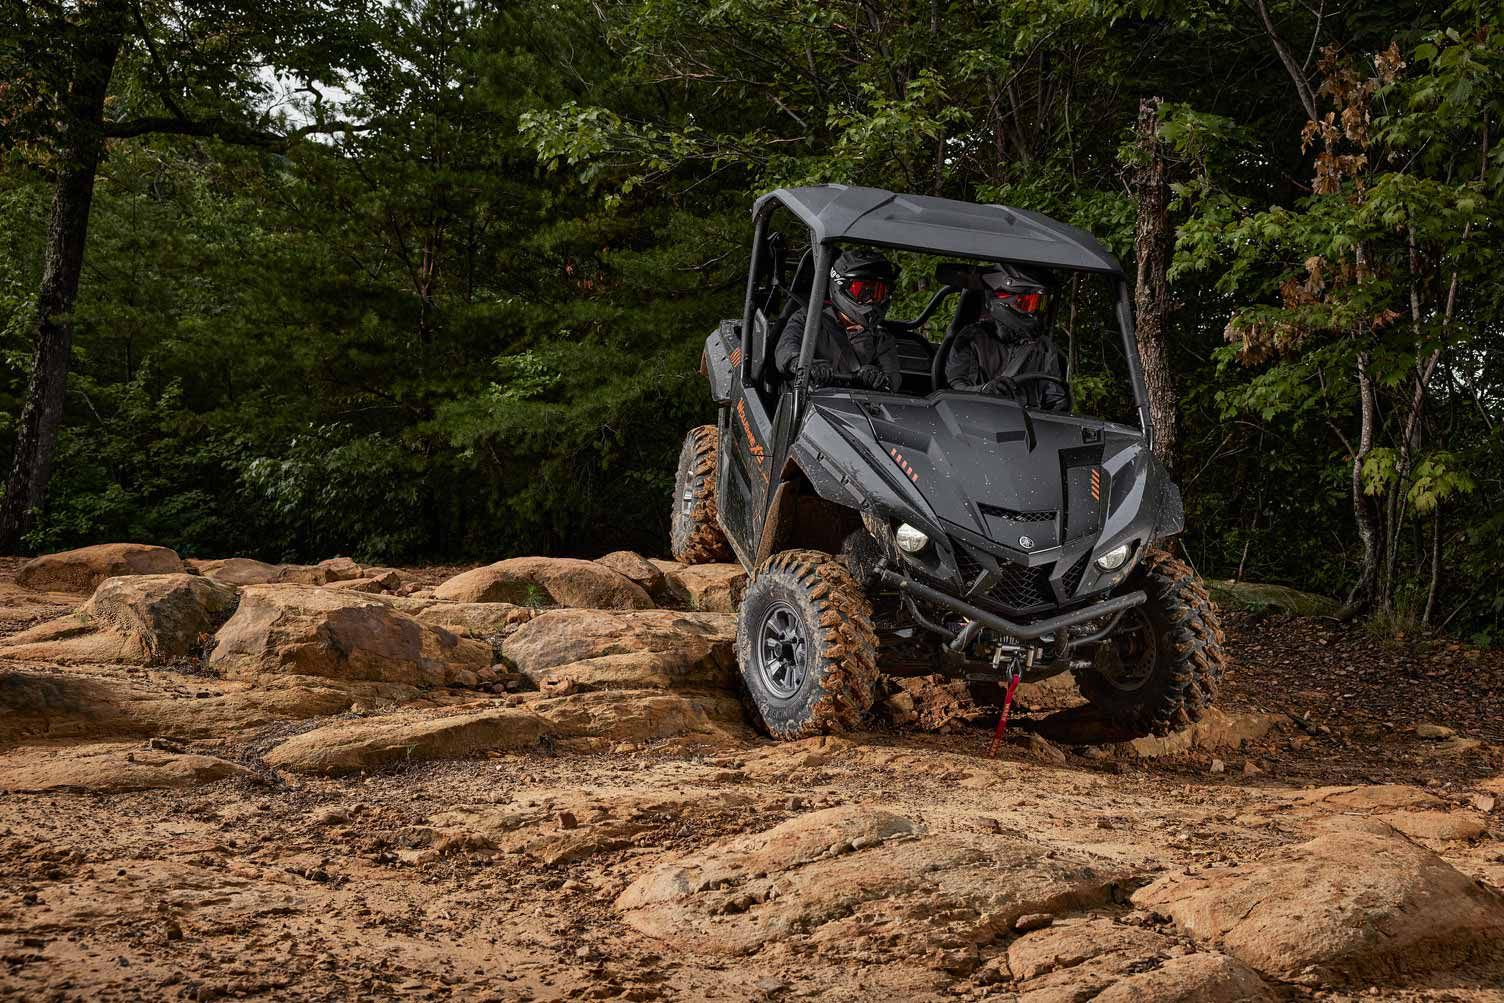 The 2022 Yamaha Wolverine X2 XT-R now comes with a center rearview mirror, a suntop, and a Warn VRX 4500 winch.